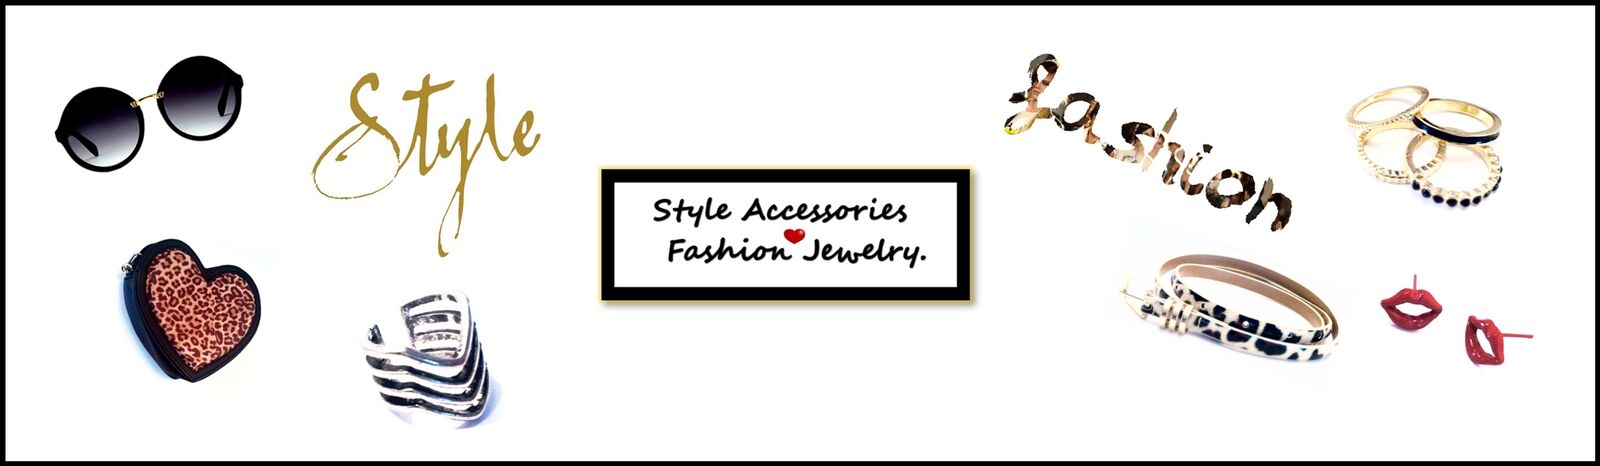 Style Accessories ♥ Fashion Jewelry